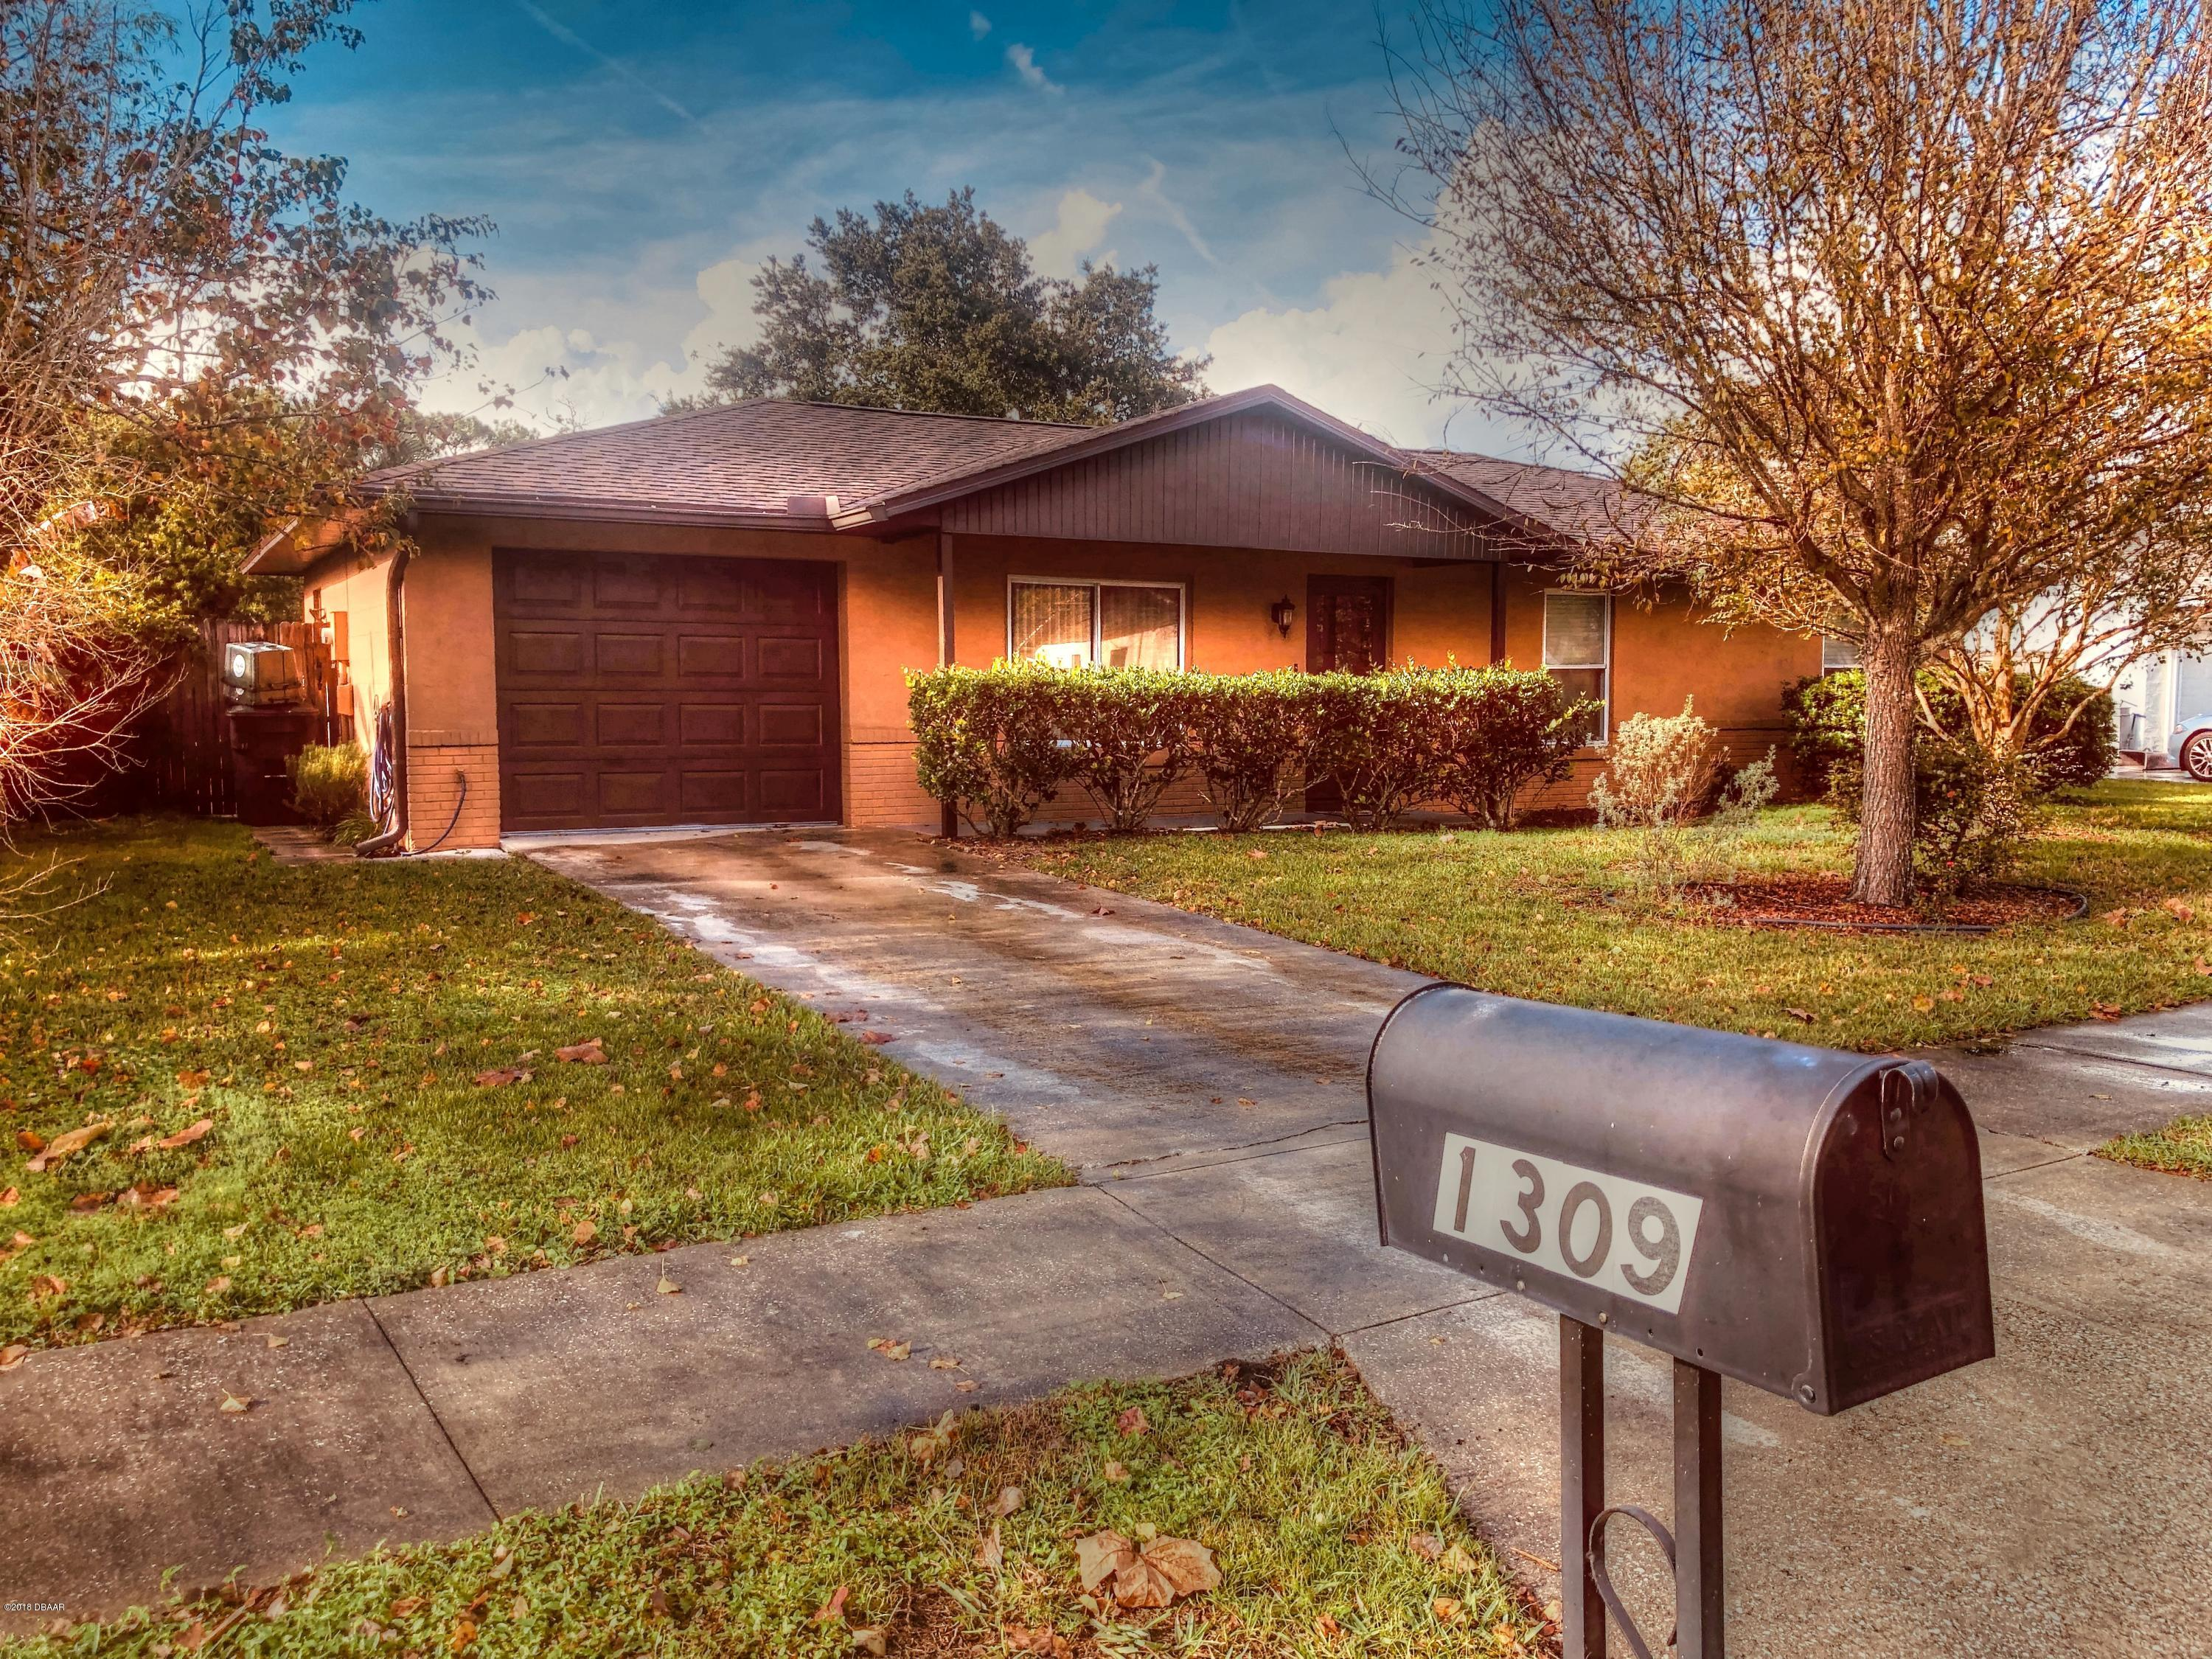 Photo of 1309 W Dexter Drive, Port Orange, FL 32129